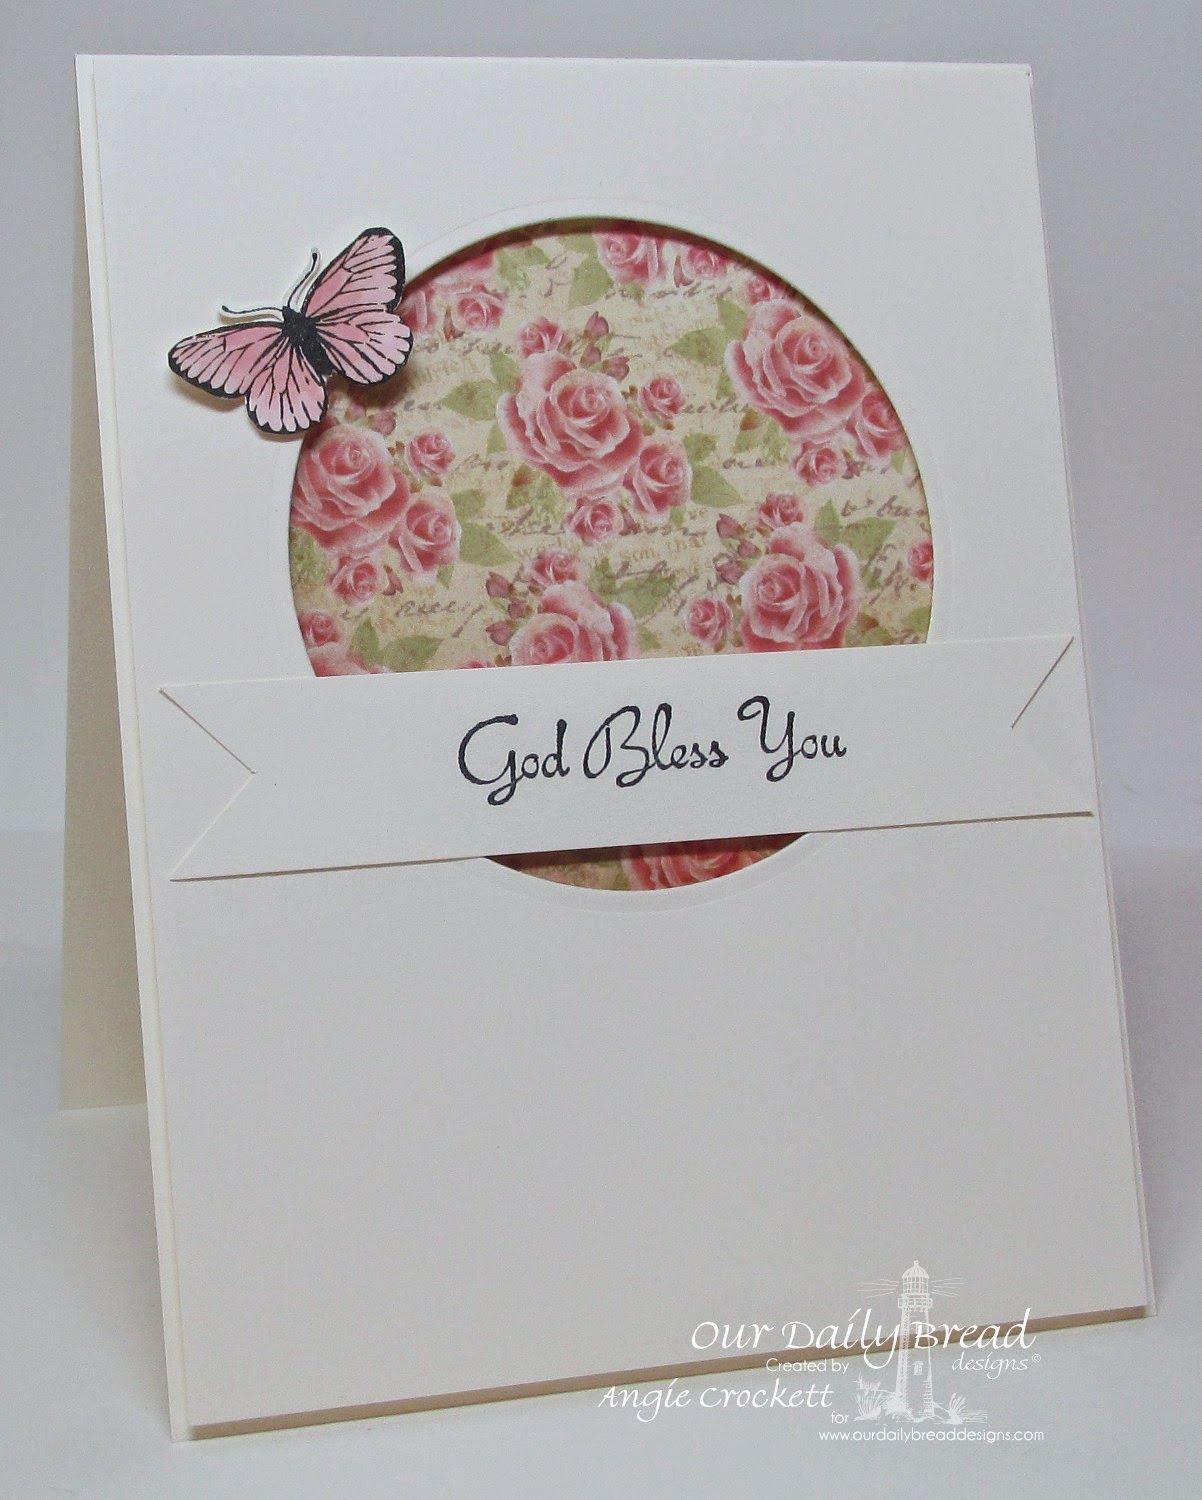 ODBD Rose, Stamped-By Butterfly Mini, Blushing Rose Designer Paper Collection, Card Designer Angie Crockett